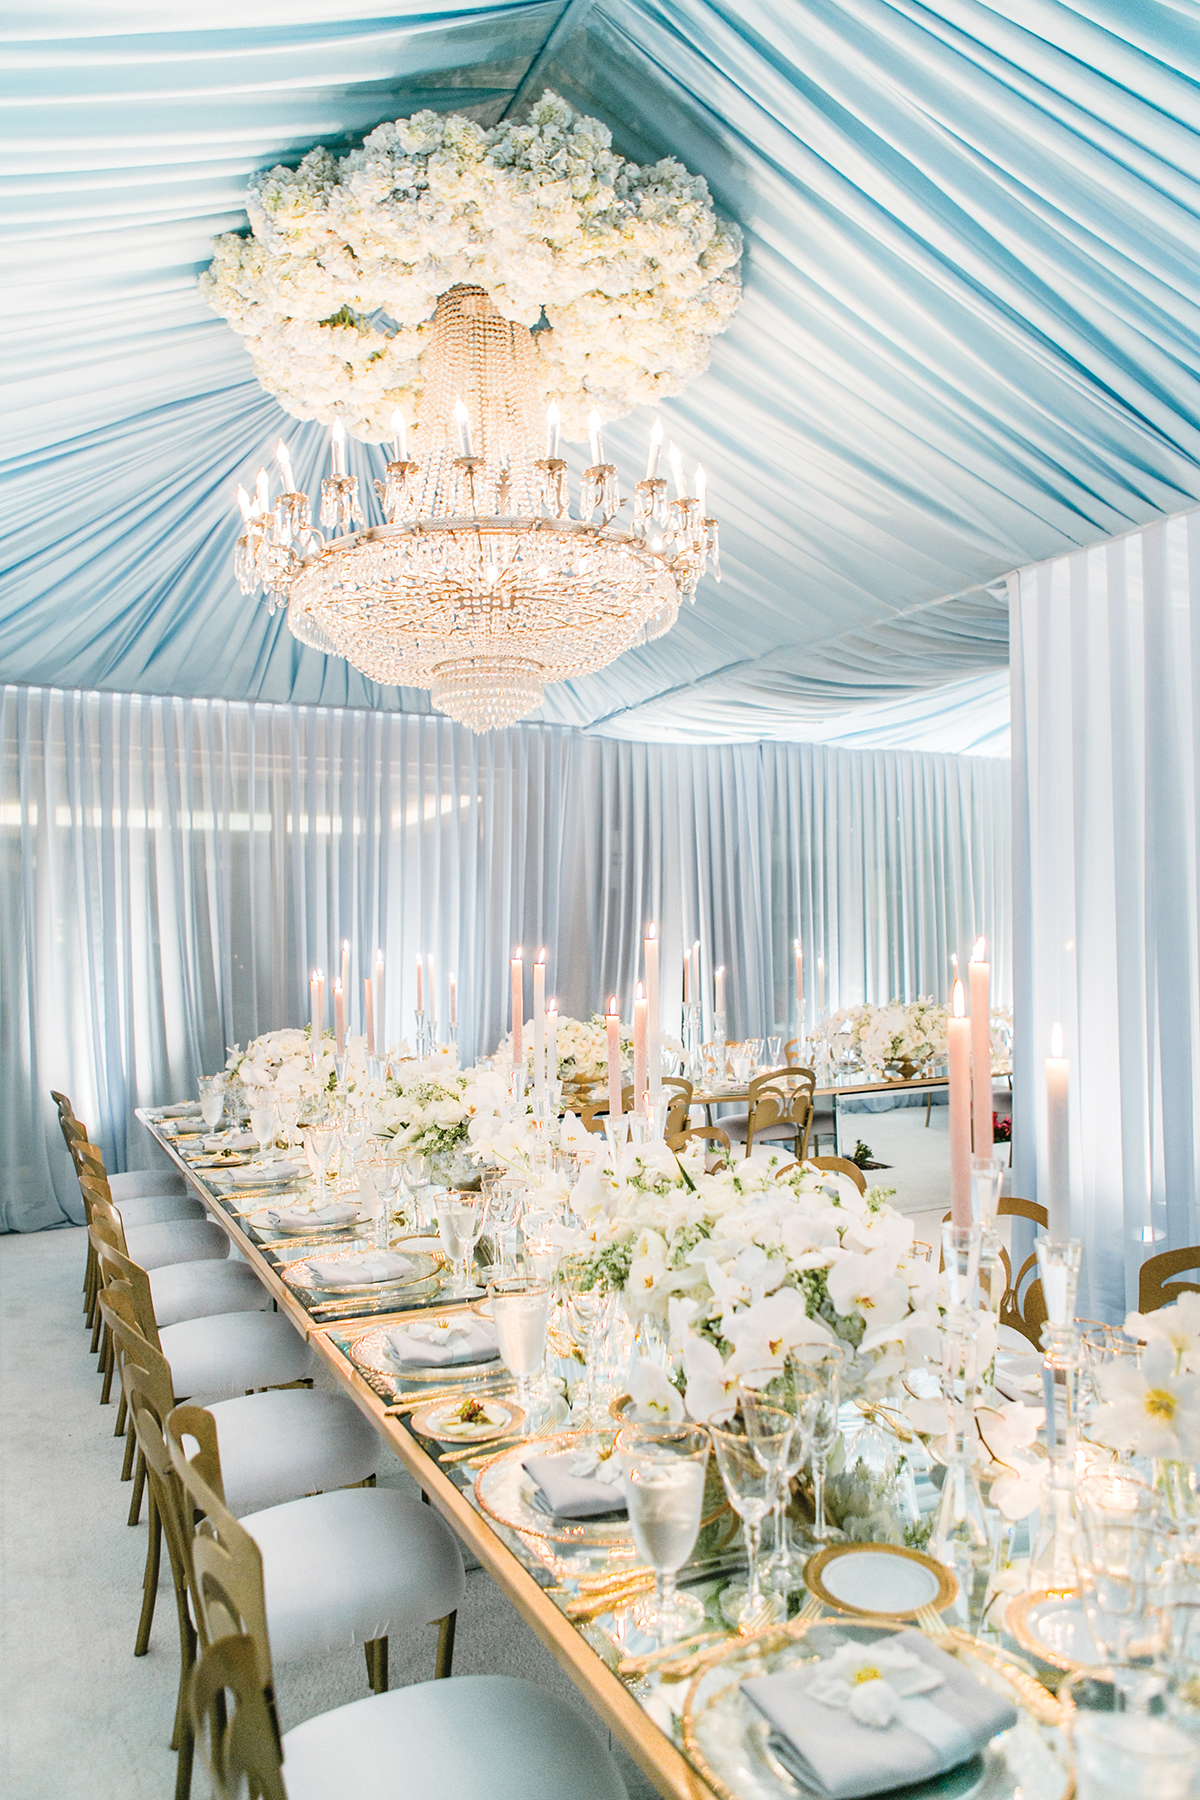 Costa Mesa-Based Event Planning Firm White Lilac on Partying with ...